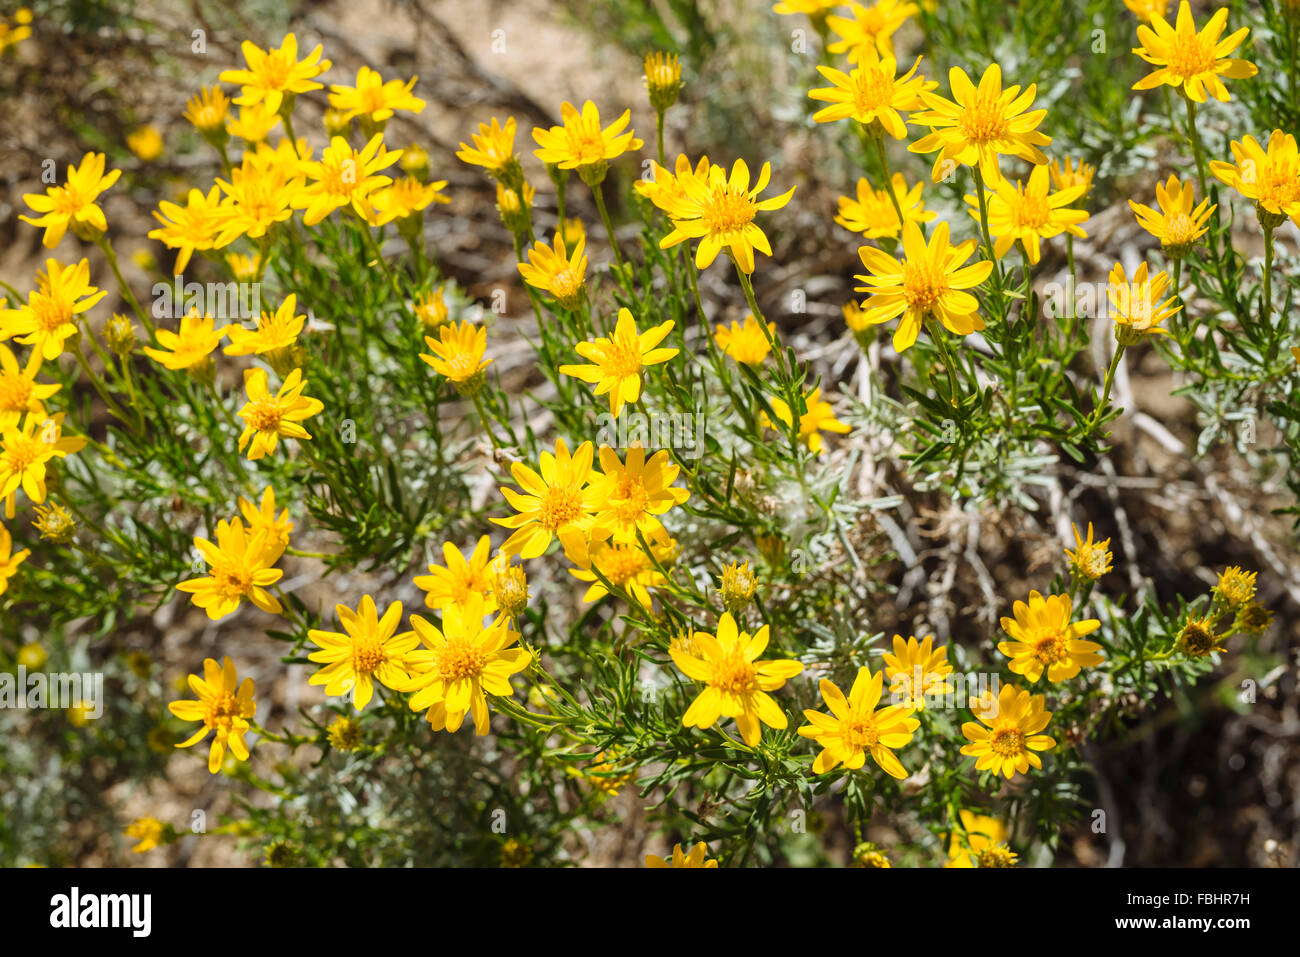 Shrub With Yellow Flowers Stock Photos Shrub With Yellow Flowers